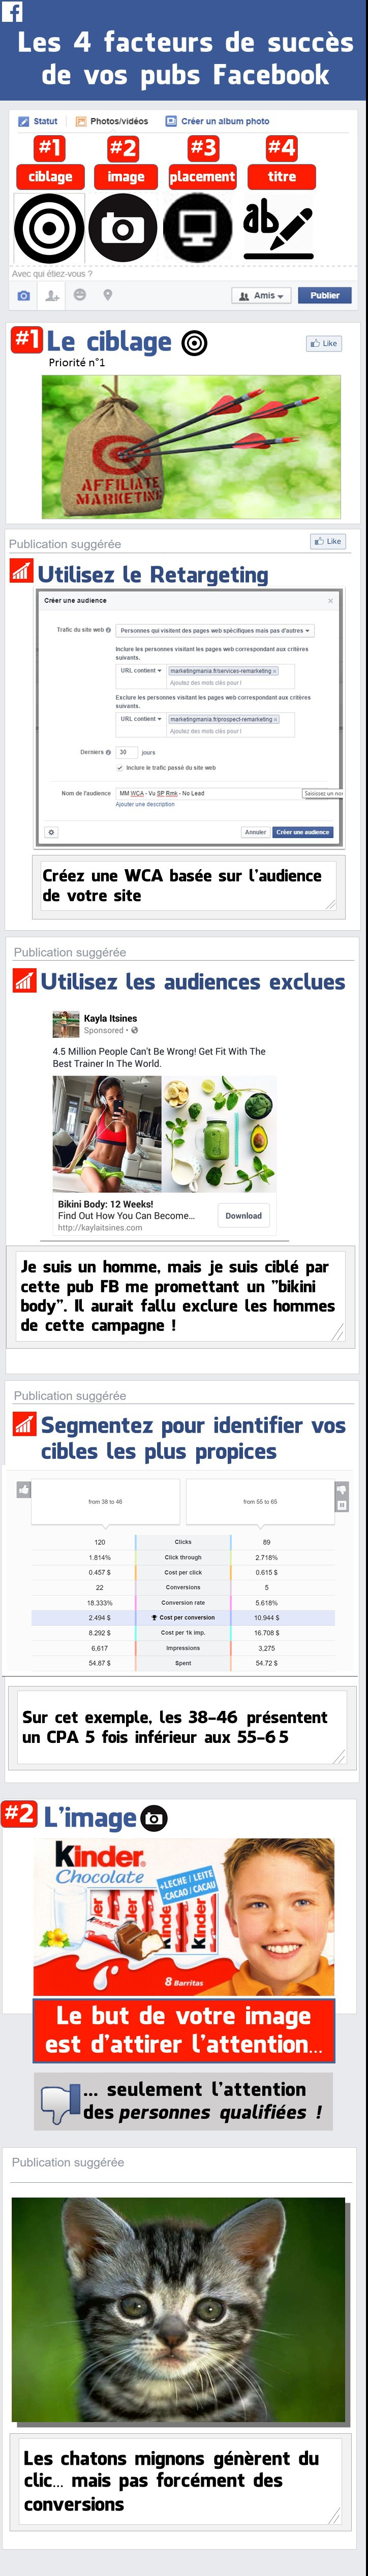 Infographie Pubs Facebook